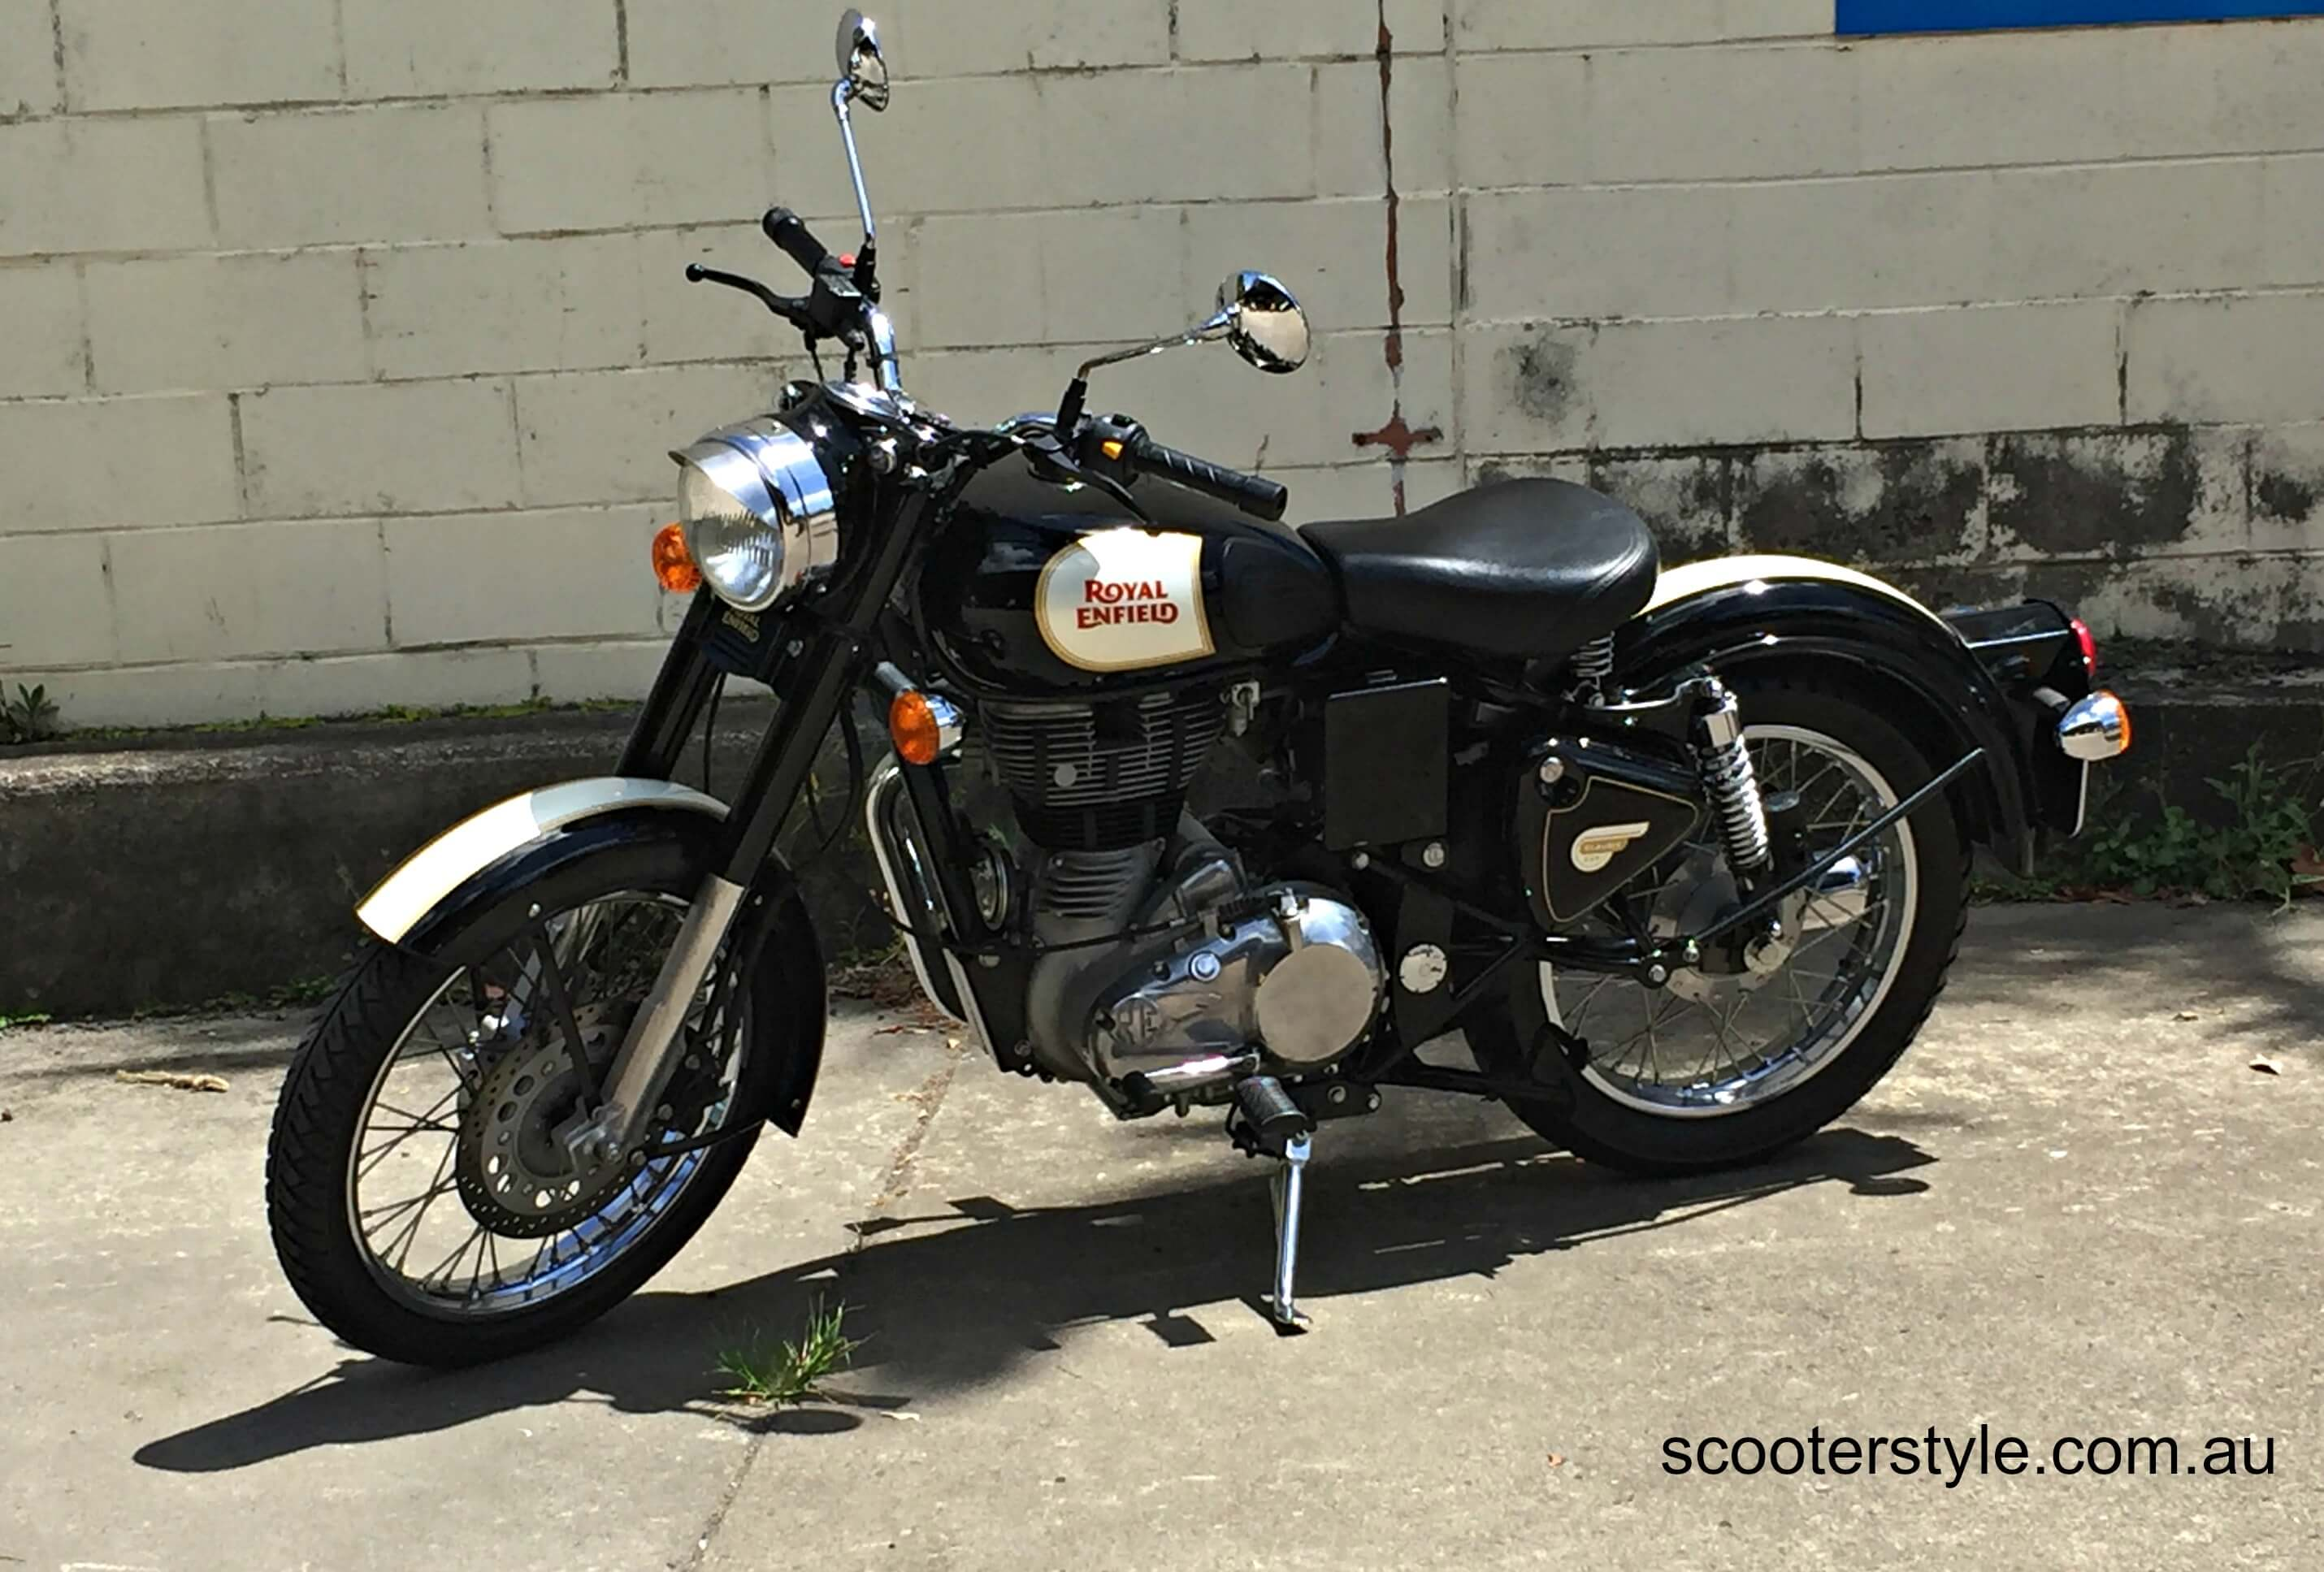 Used Royal Enfield Classic 350 $4,990 Rideaway